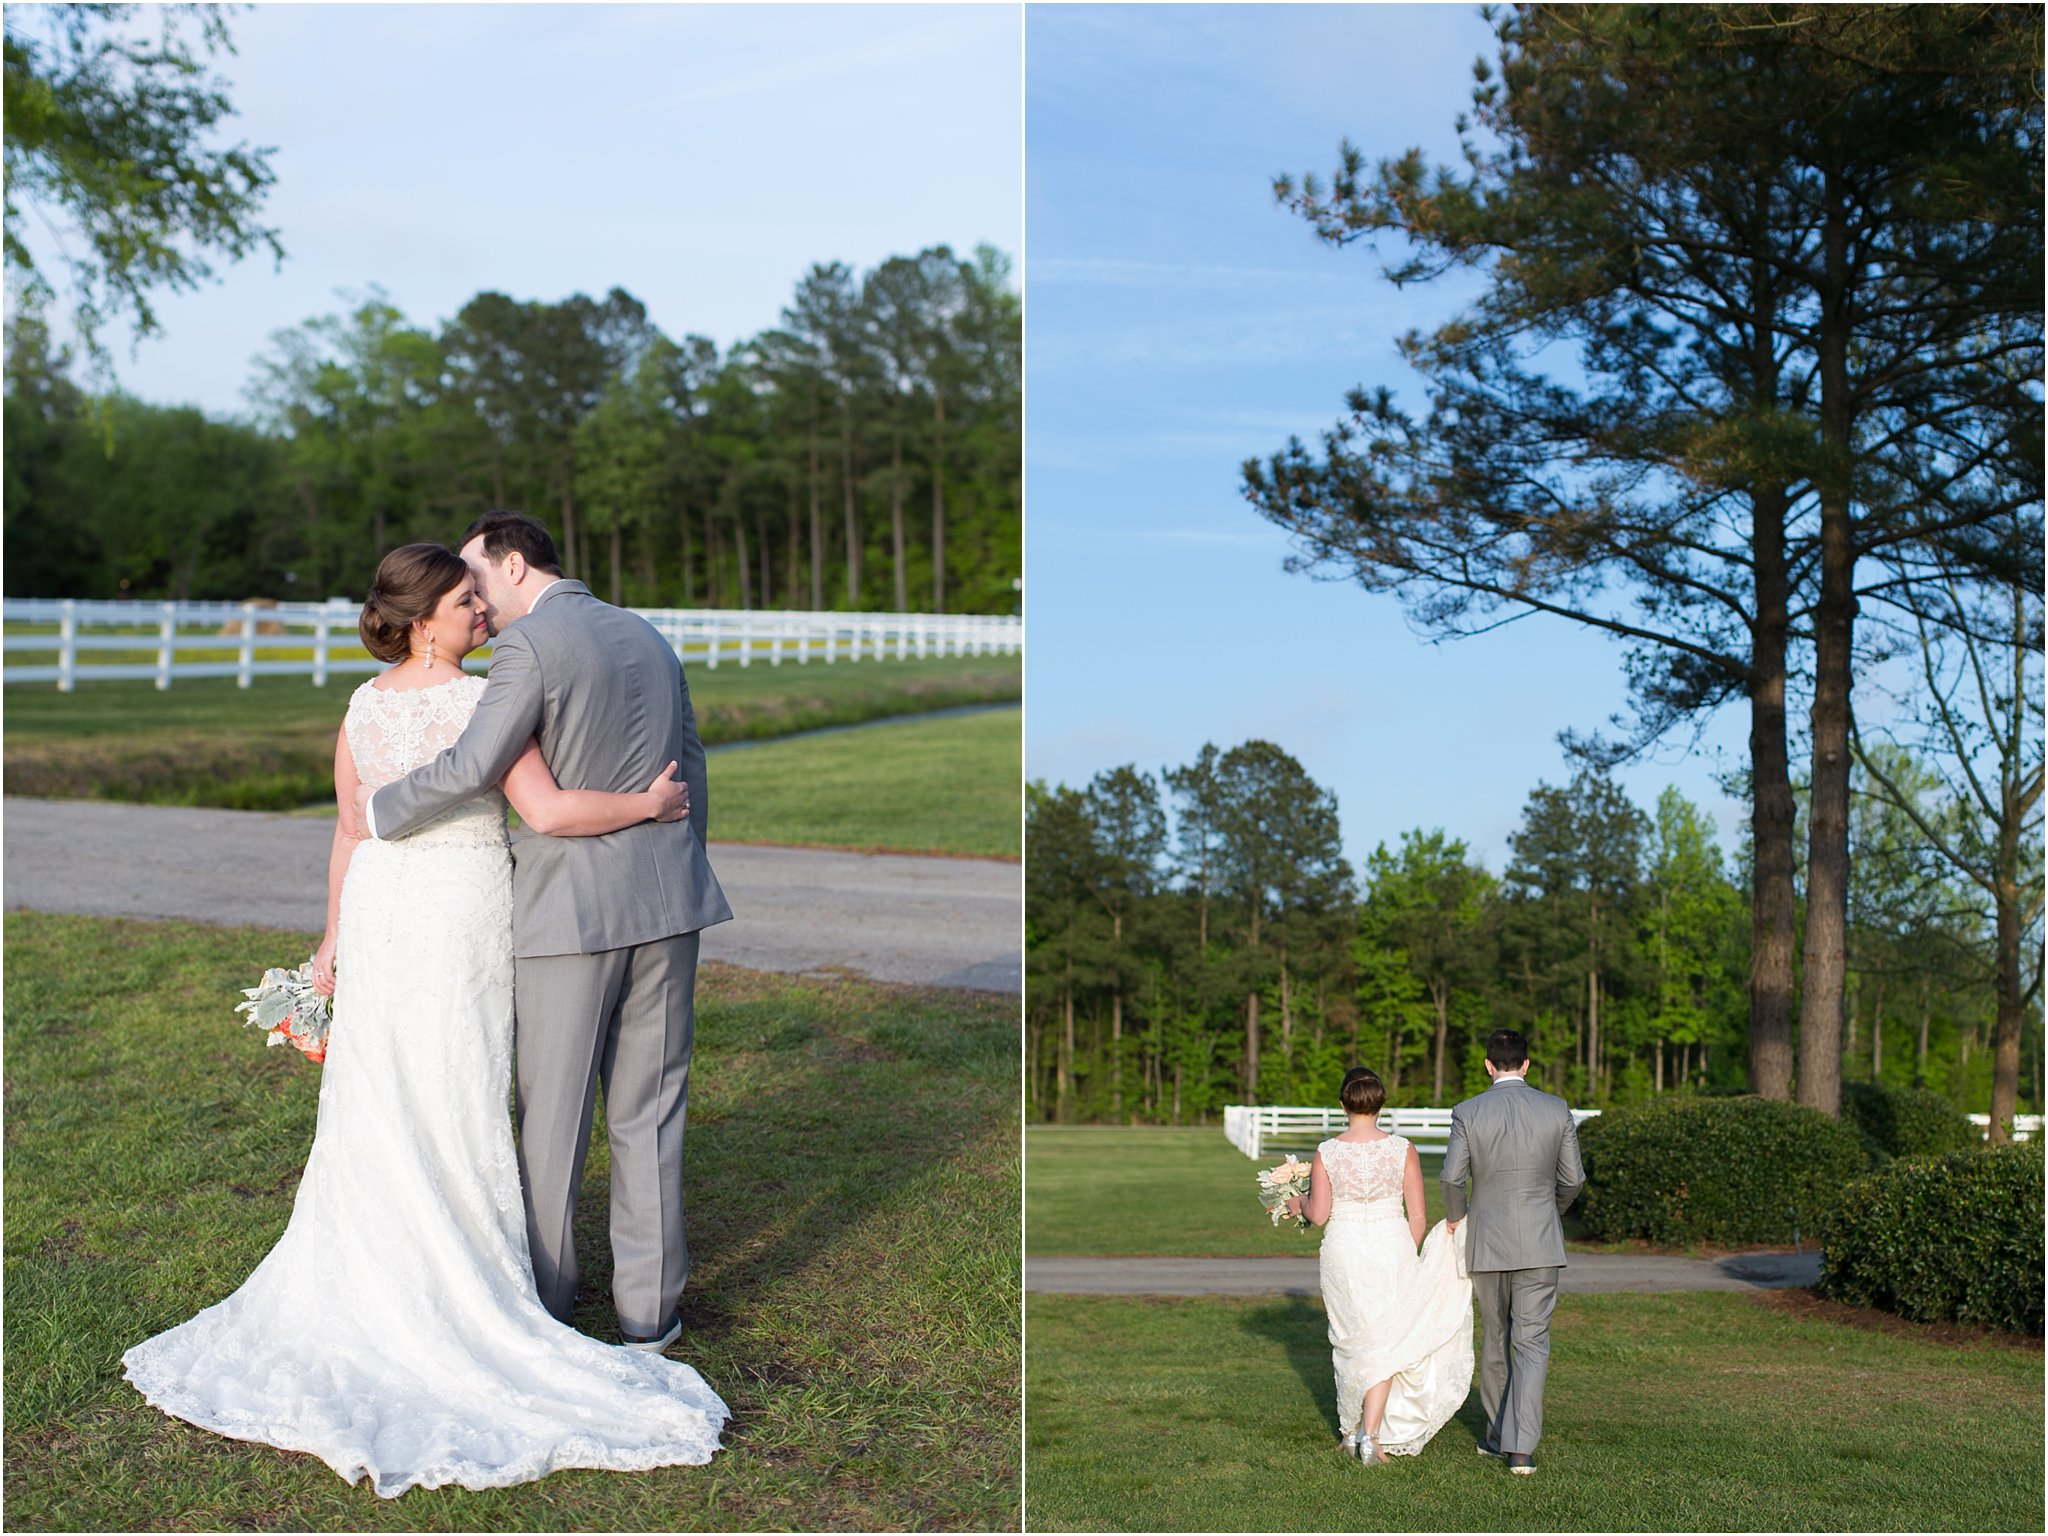 jessica_ryan_photography_wedding_photographs_must_haves_bride_top_wedding_photographs_virginia_wedding_photographer_2038